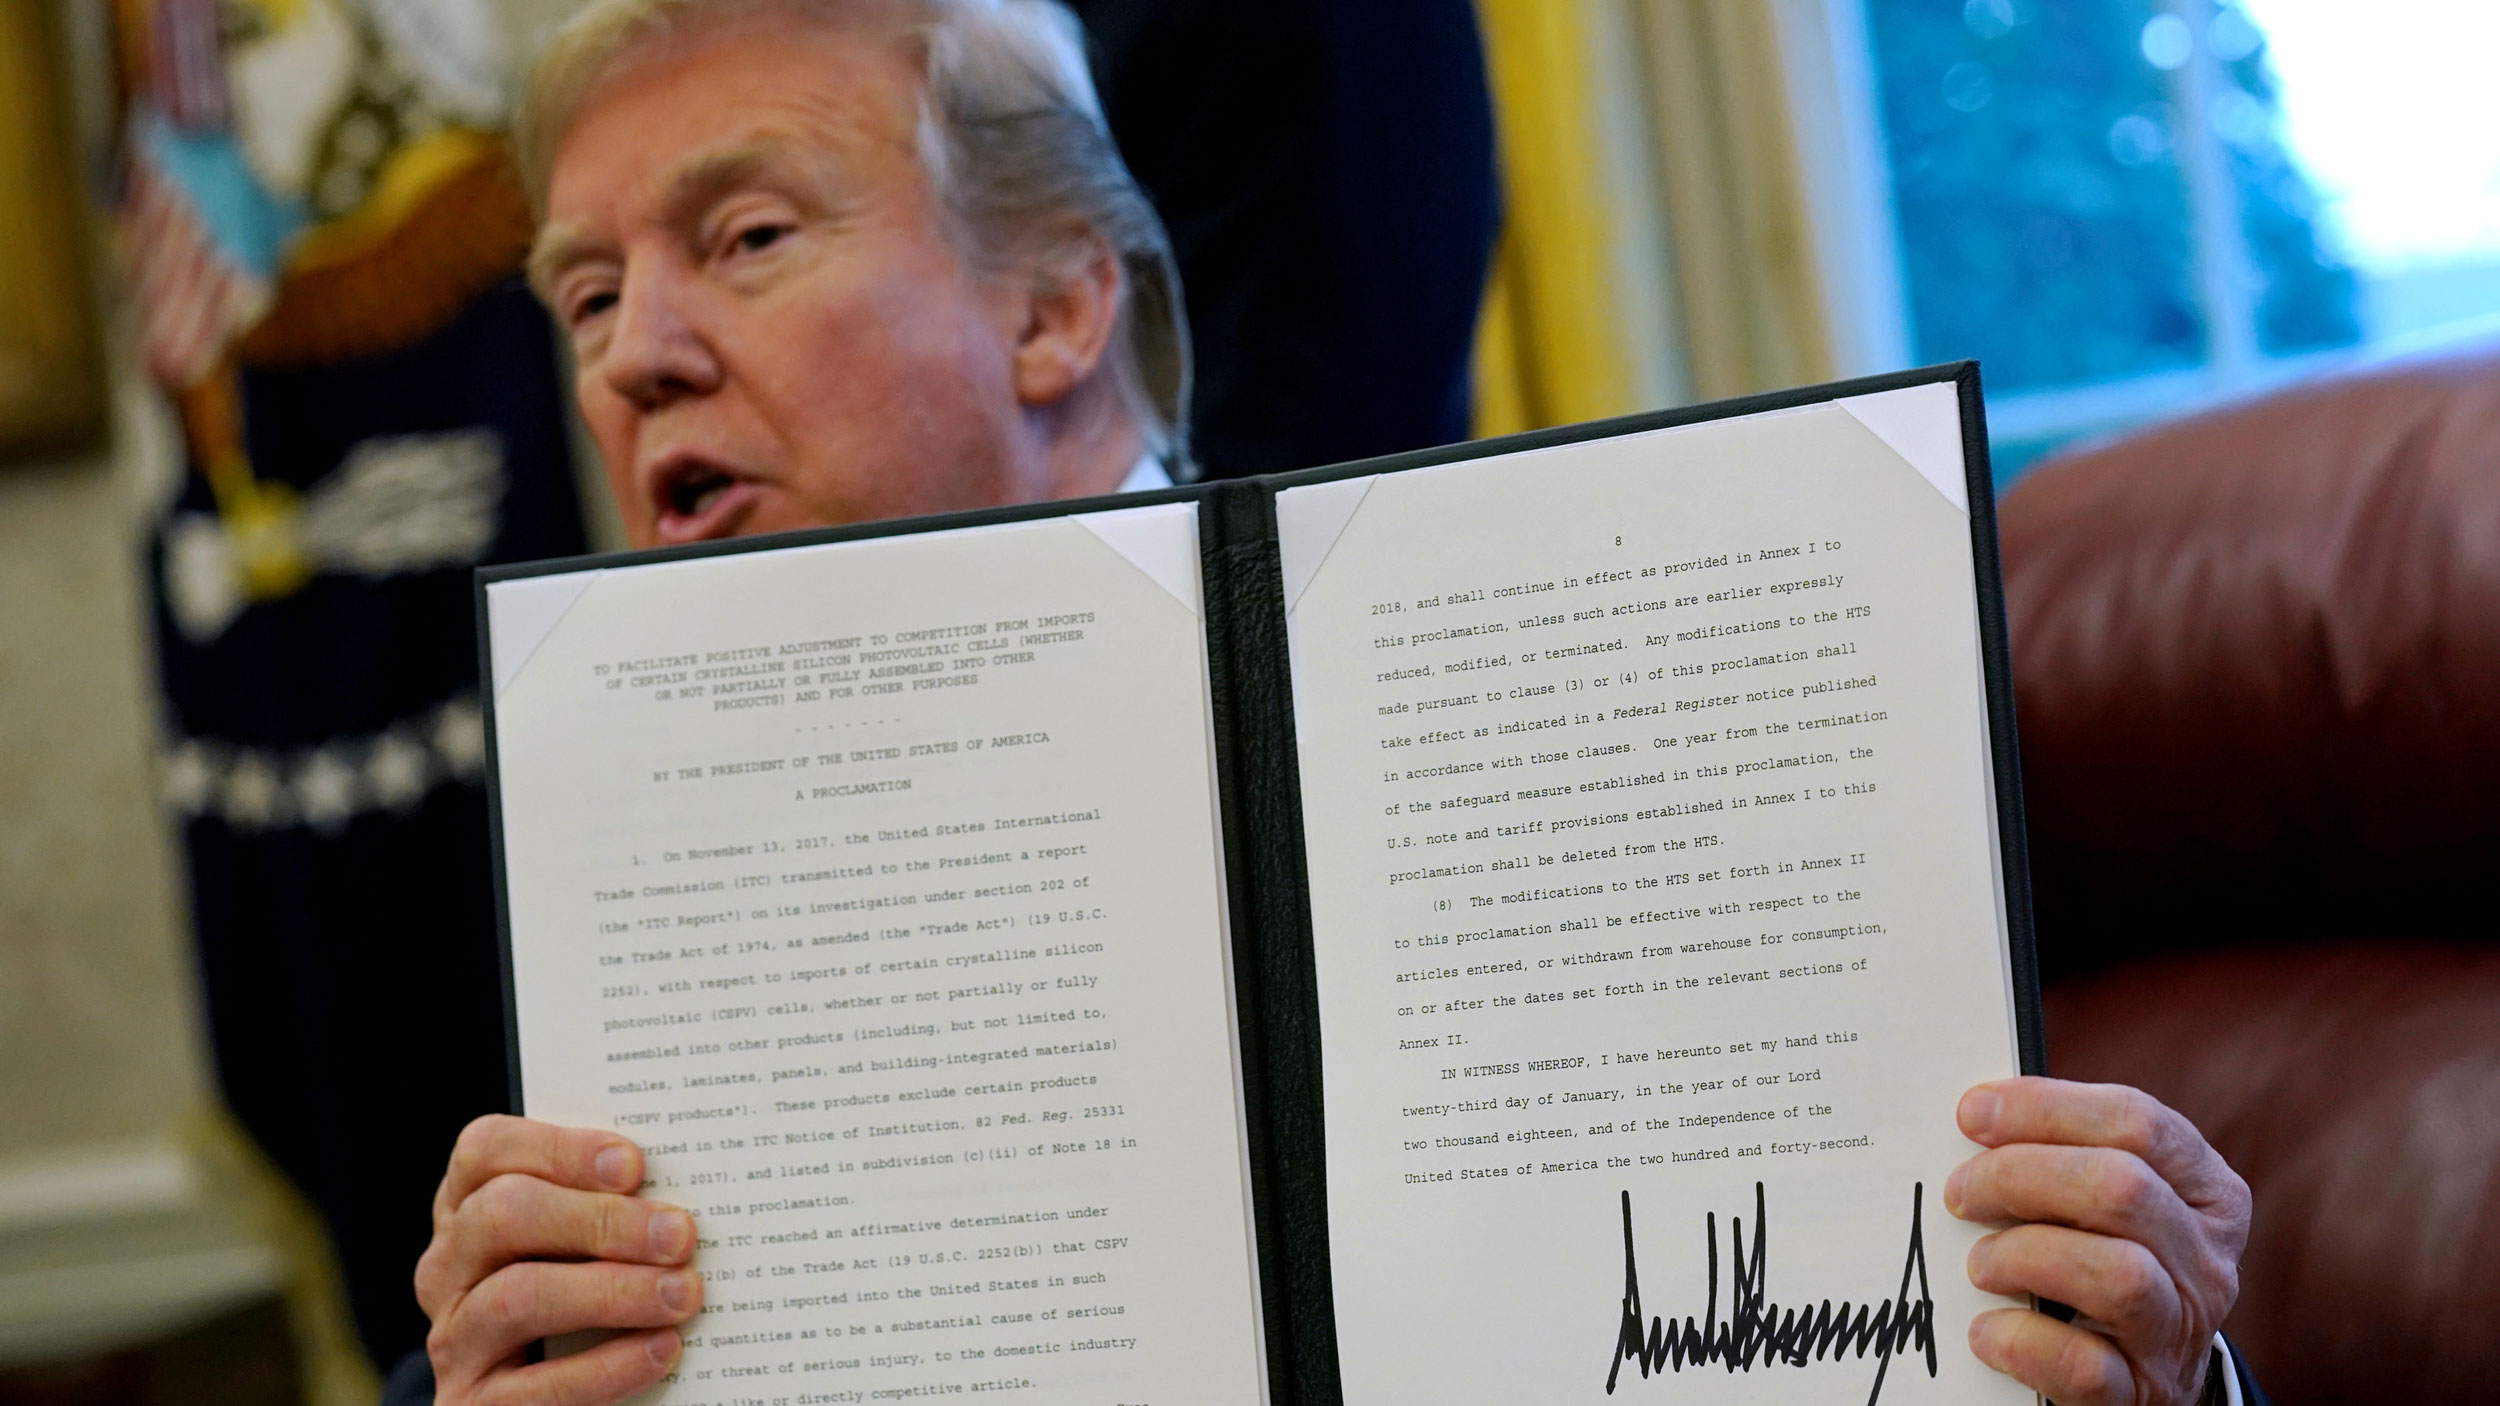 Donald Trump is shown holding.a folder with a directive typed out and his signature.